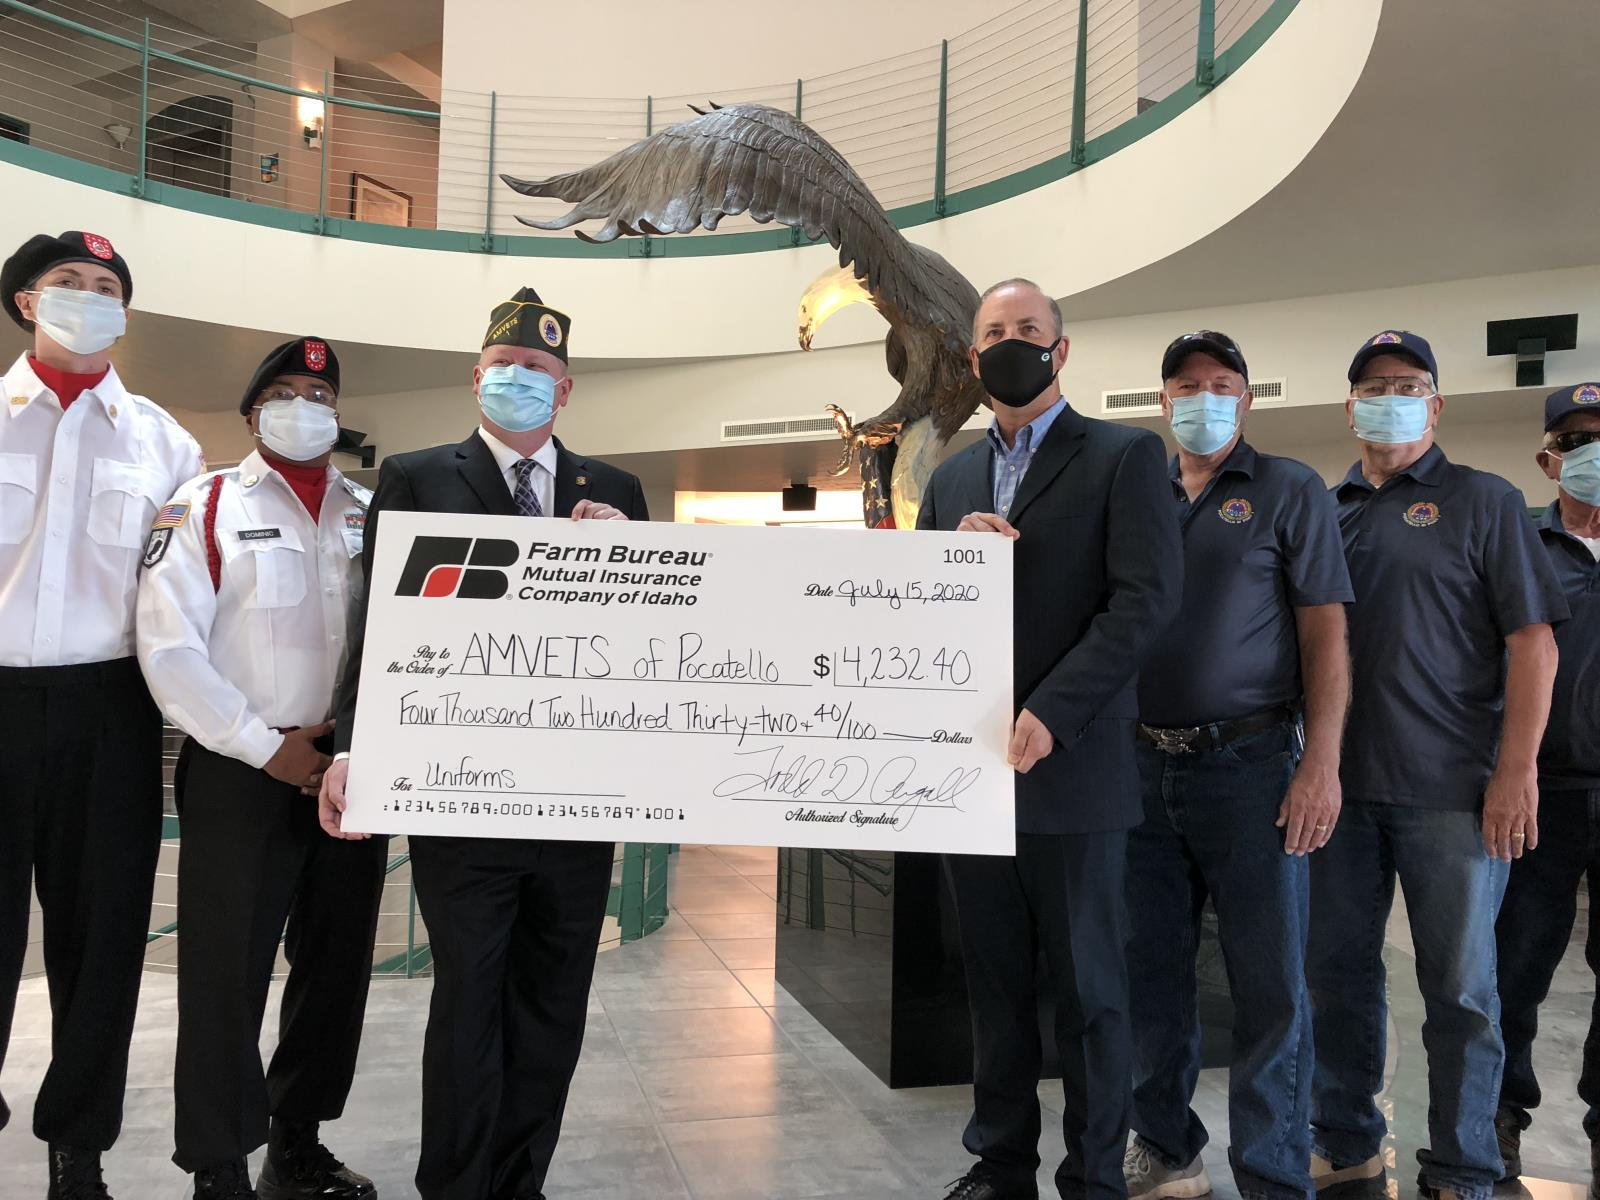 Farm Bureau Mutual Insurance Co. of Idaho CEO Todd Argall, center right, presents a check for $4,232 to AMVETS Pocatello Commander Lance Kolbet, center left, July 15. The money will be used to help the local AMVETS chapter start its honor guard.